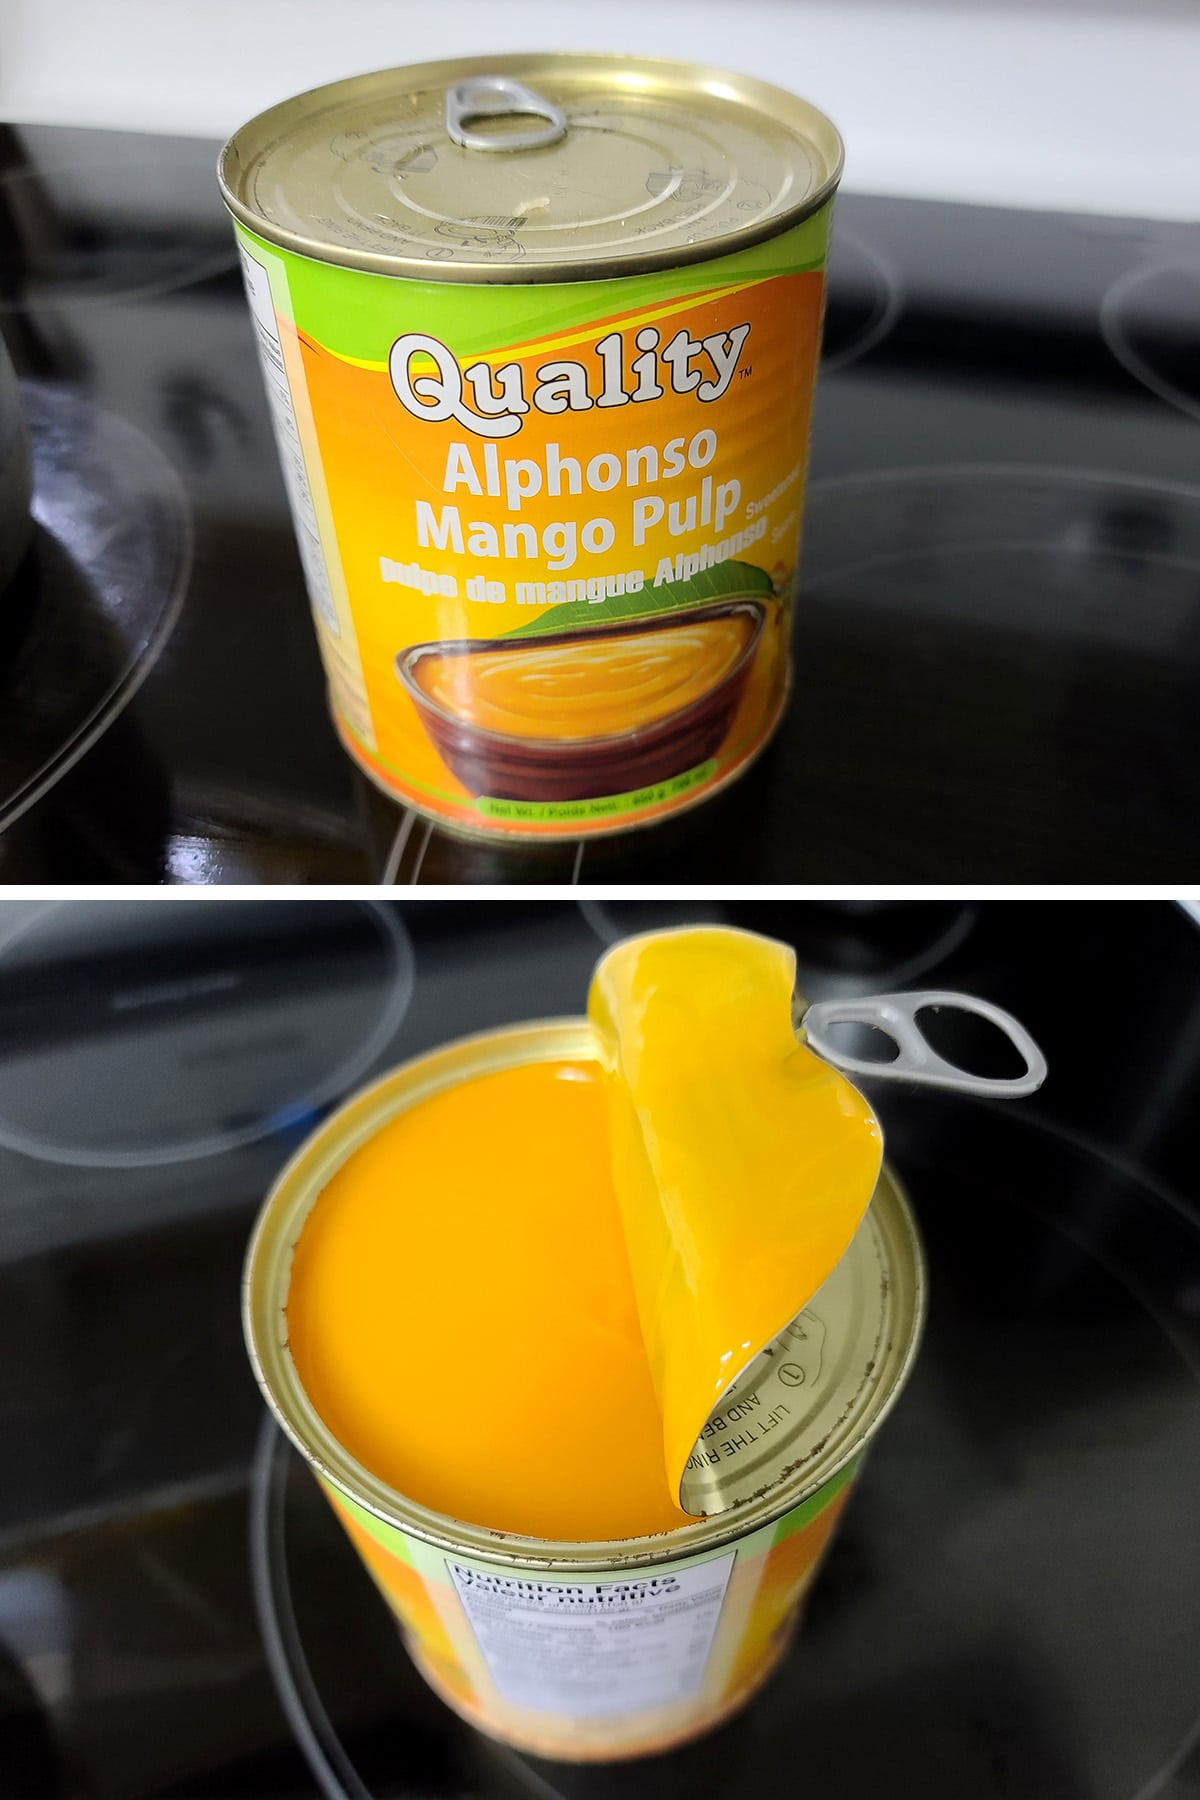 A can of mango pulp being opened.